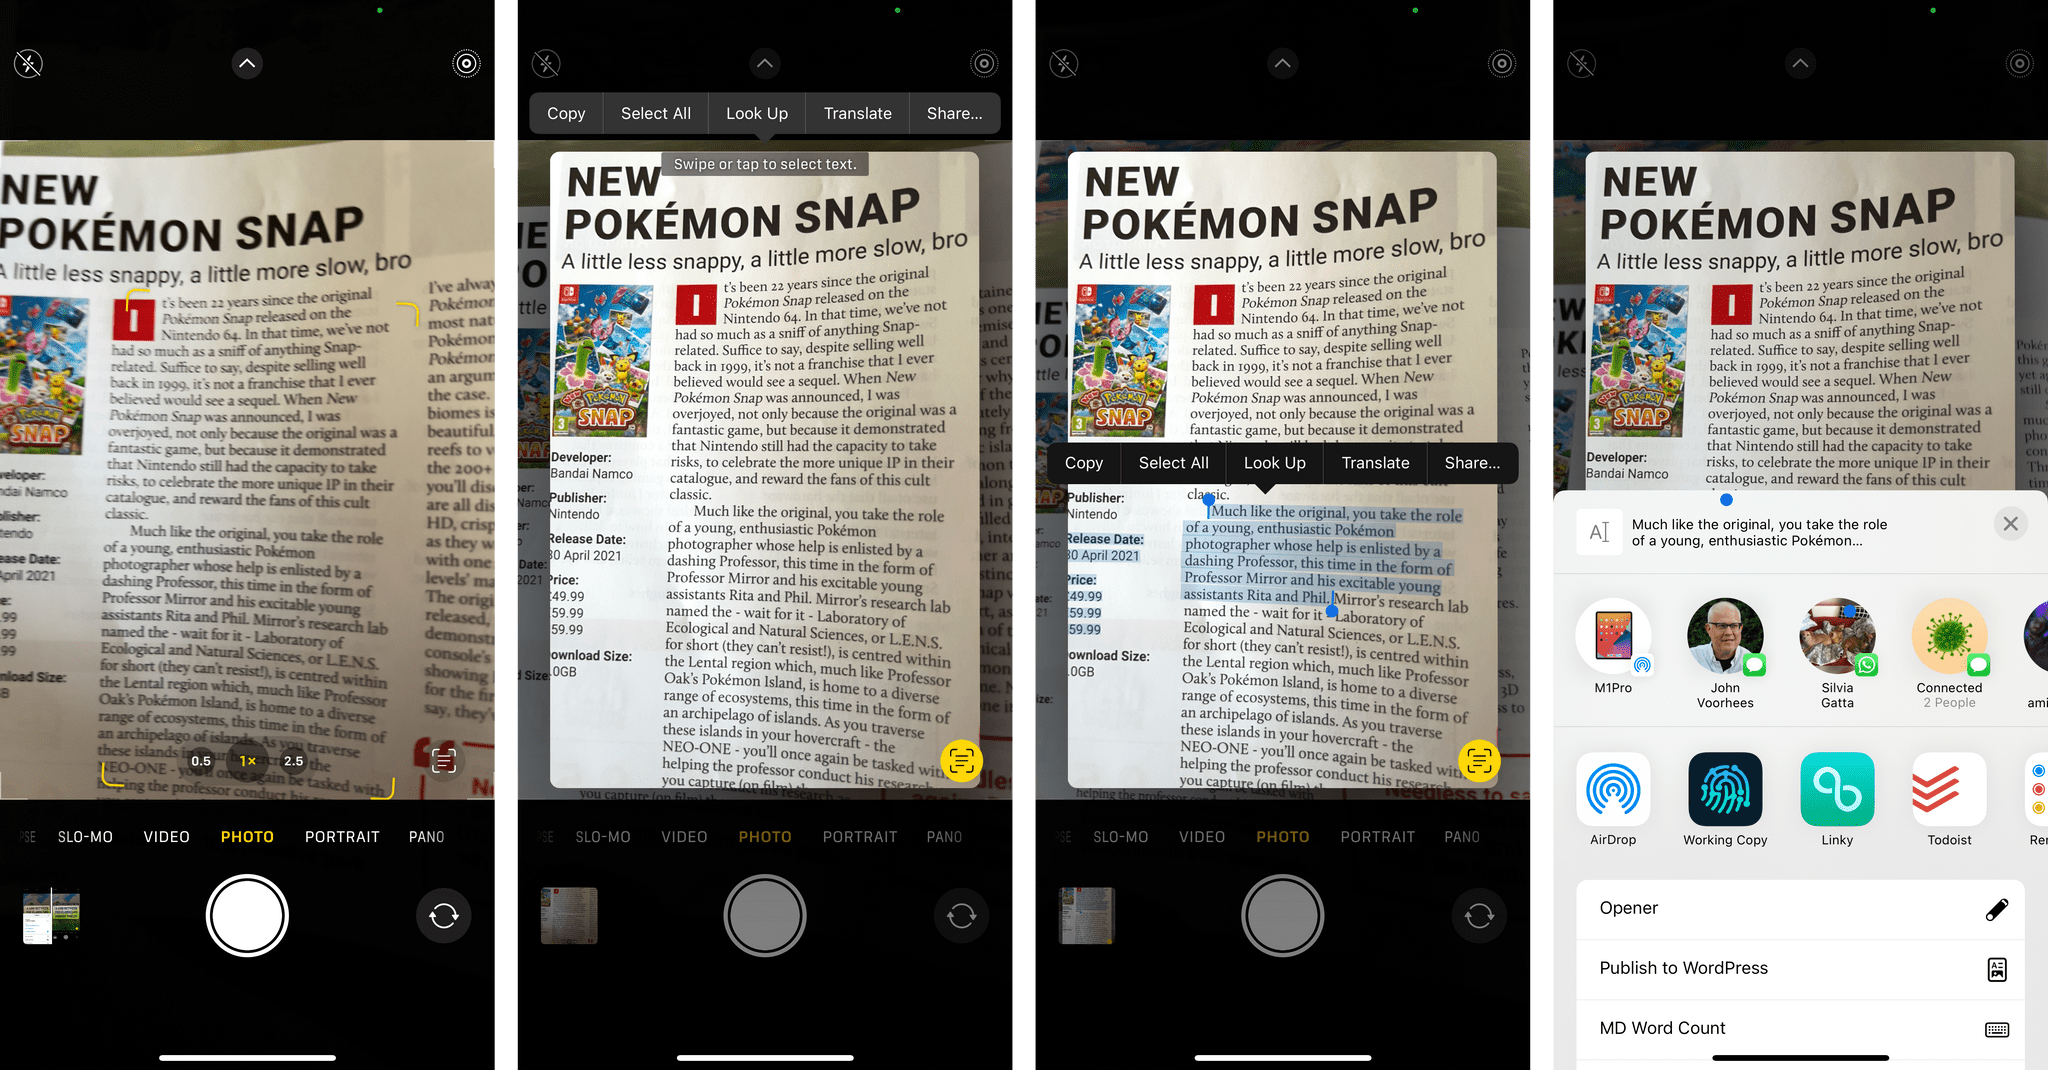 You can use Live Text to select text, copy it, translate it, look it up, and even share it with extensions.